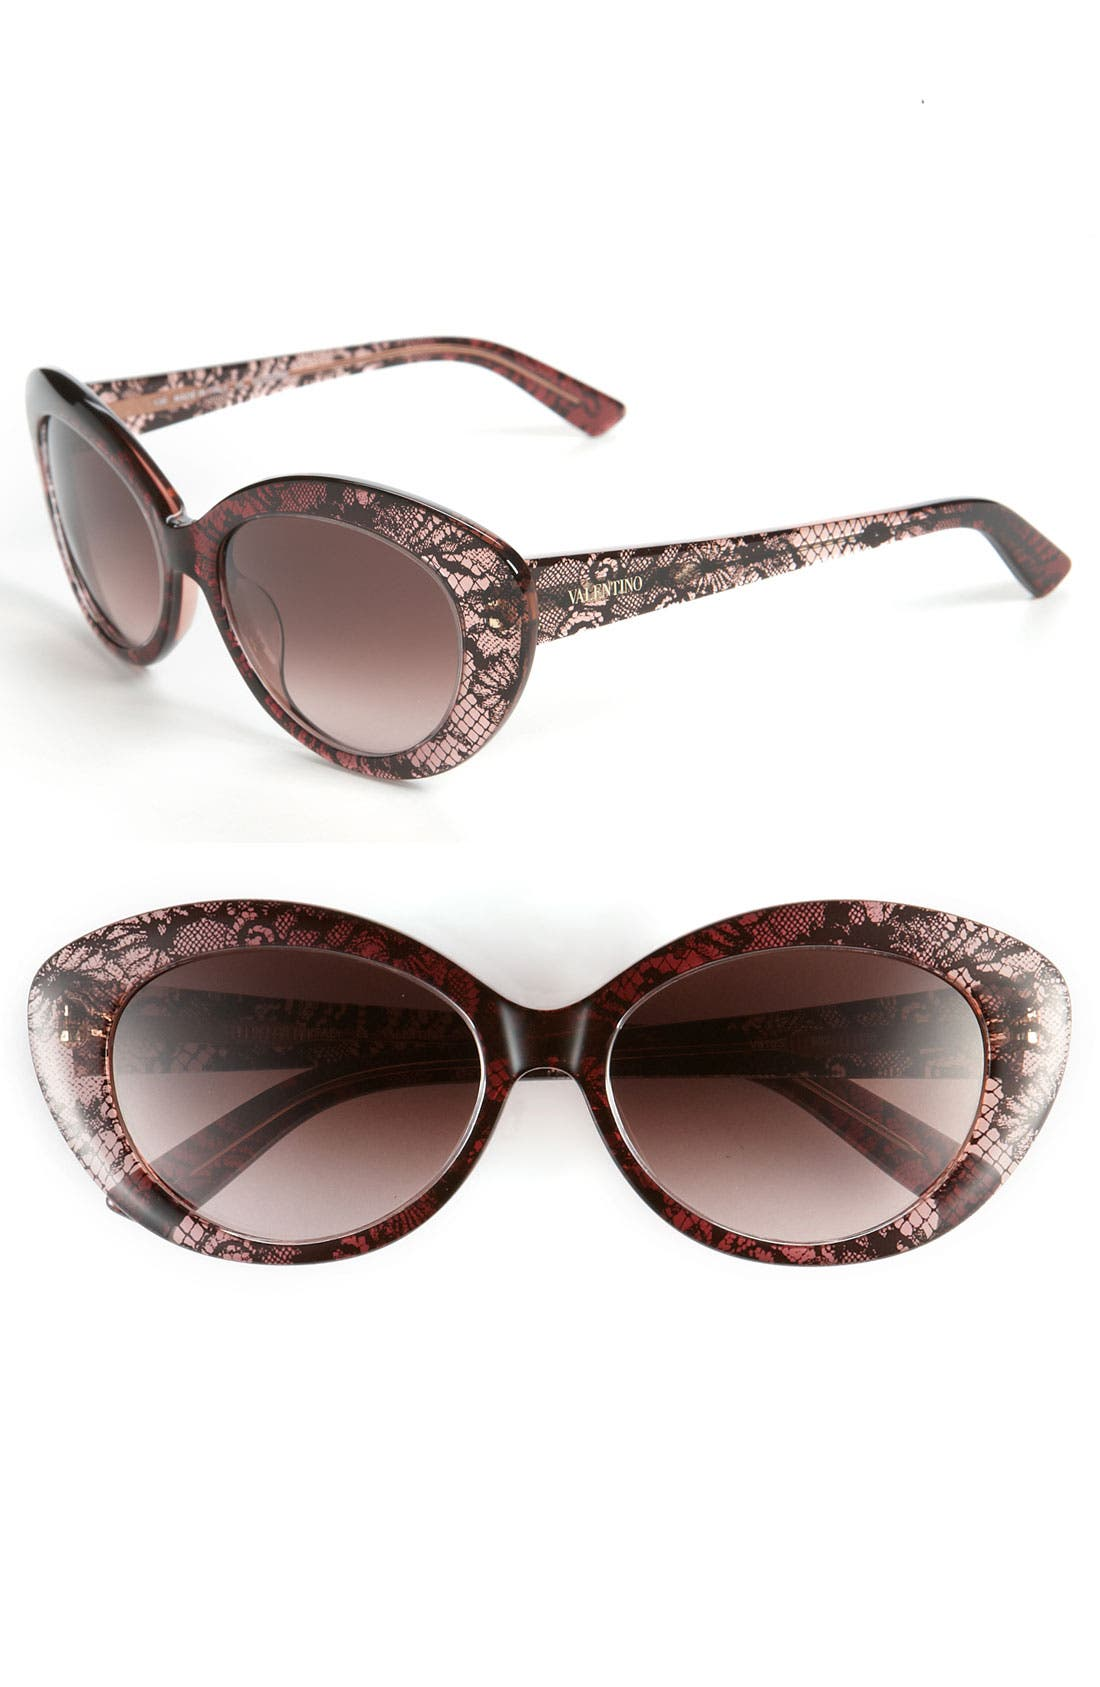 Main Image - Valentino Cat's Eye Sunglasses